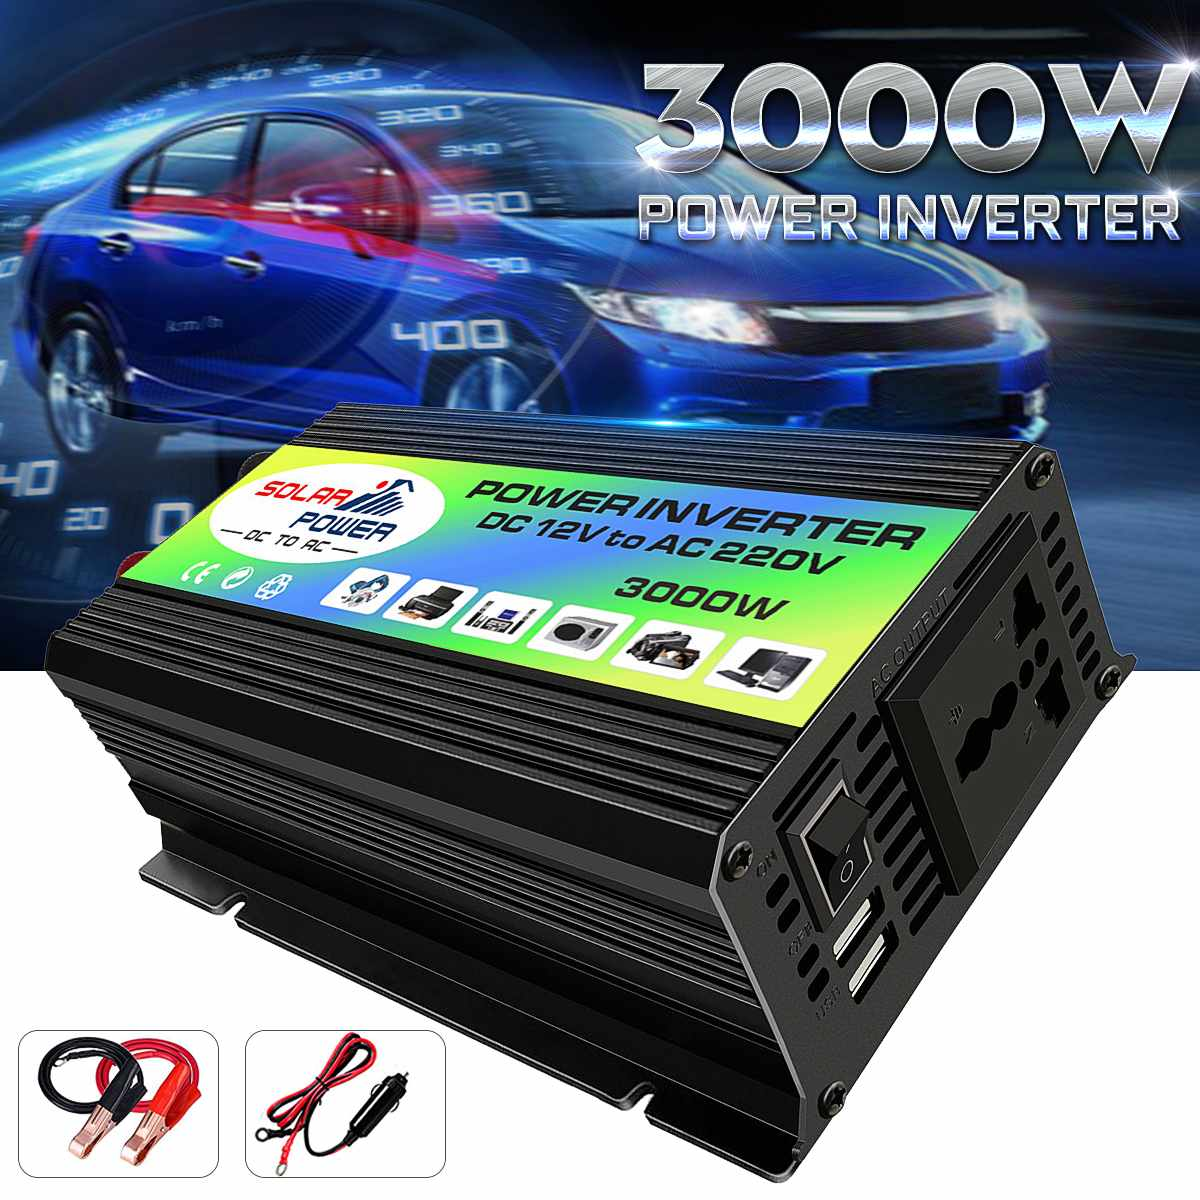 3000W Car Inverter Power Inverter DC 12V To AC 220V Boat Voltage Power Converter USB Charger Converter With 2 USB